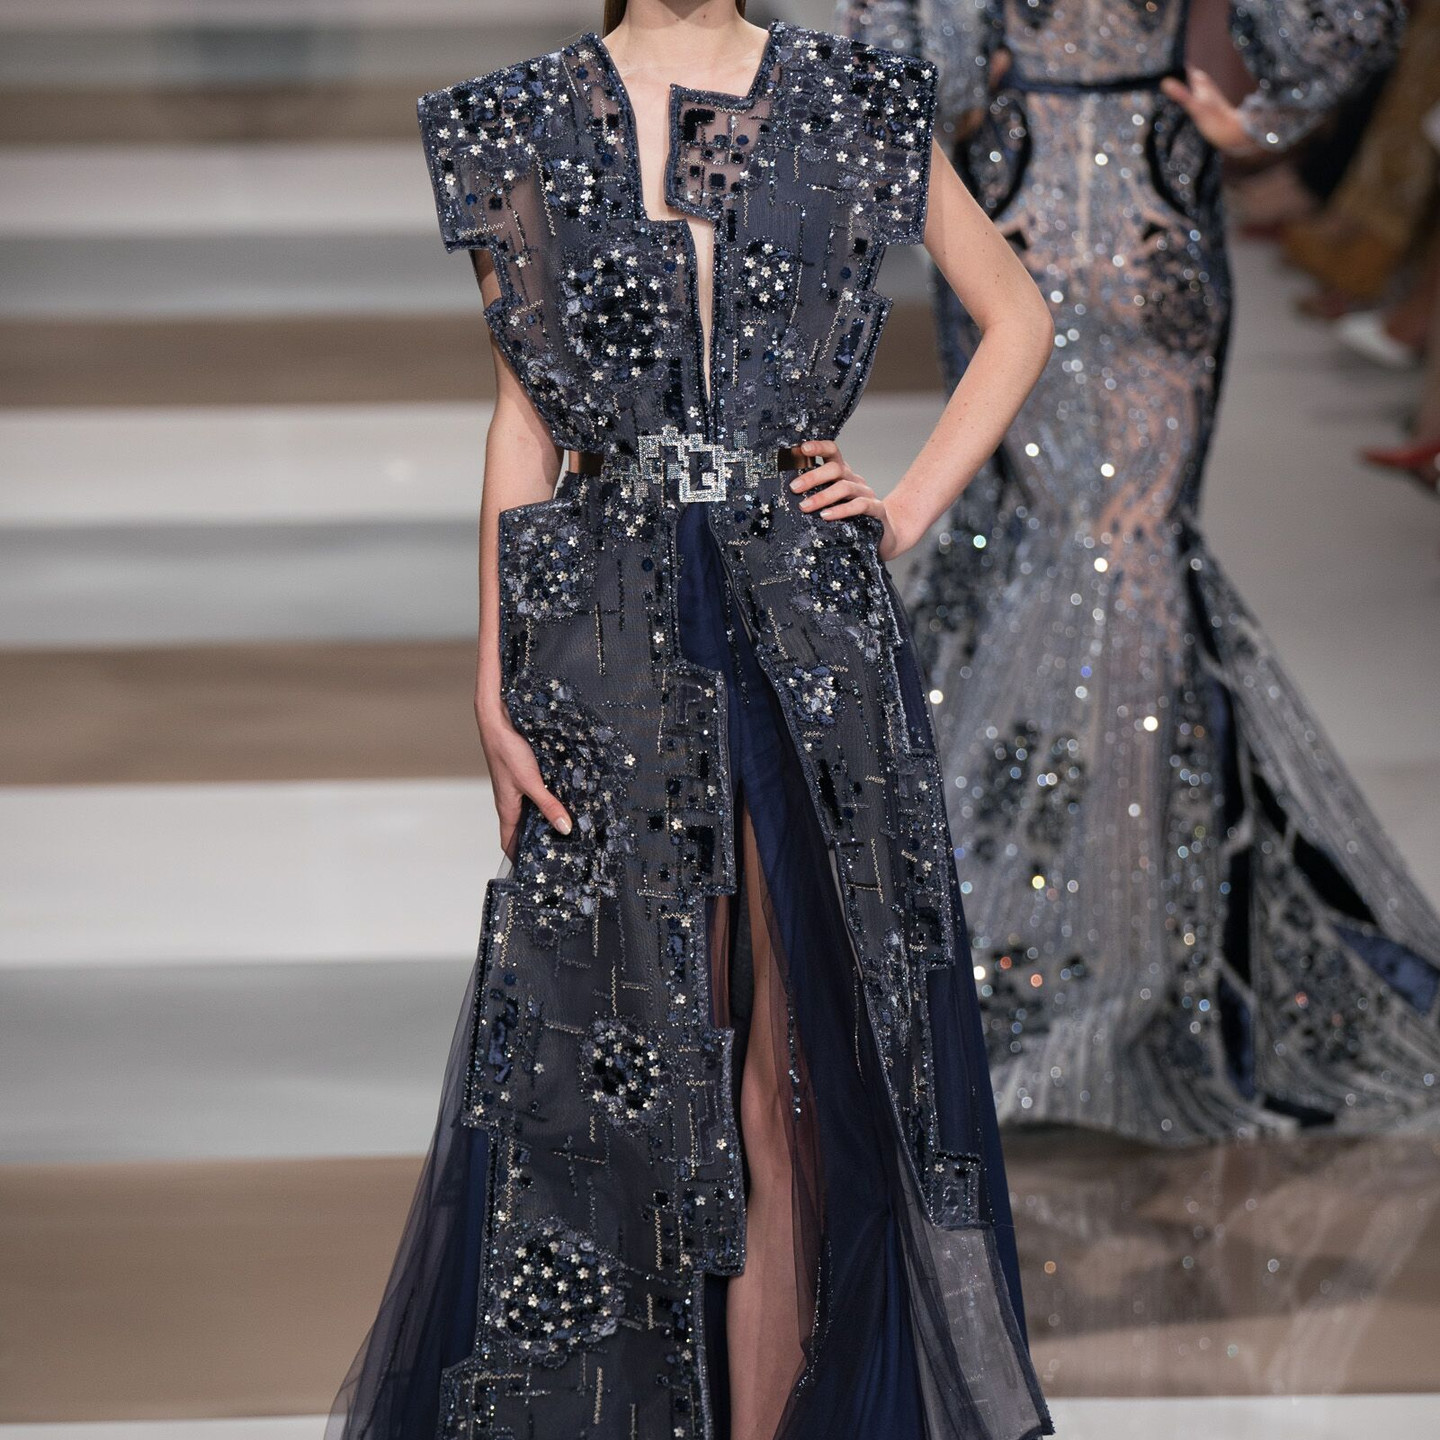 Ziad Nakad Autumn/Winter 2019/20 Couture Collection PFW Shot by: Antonio SO